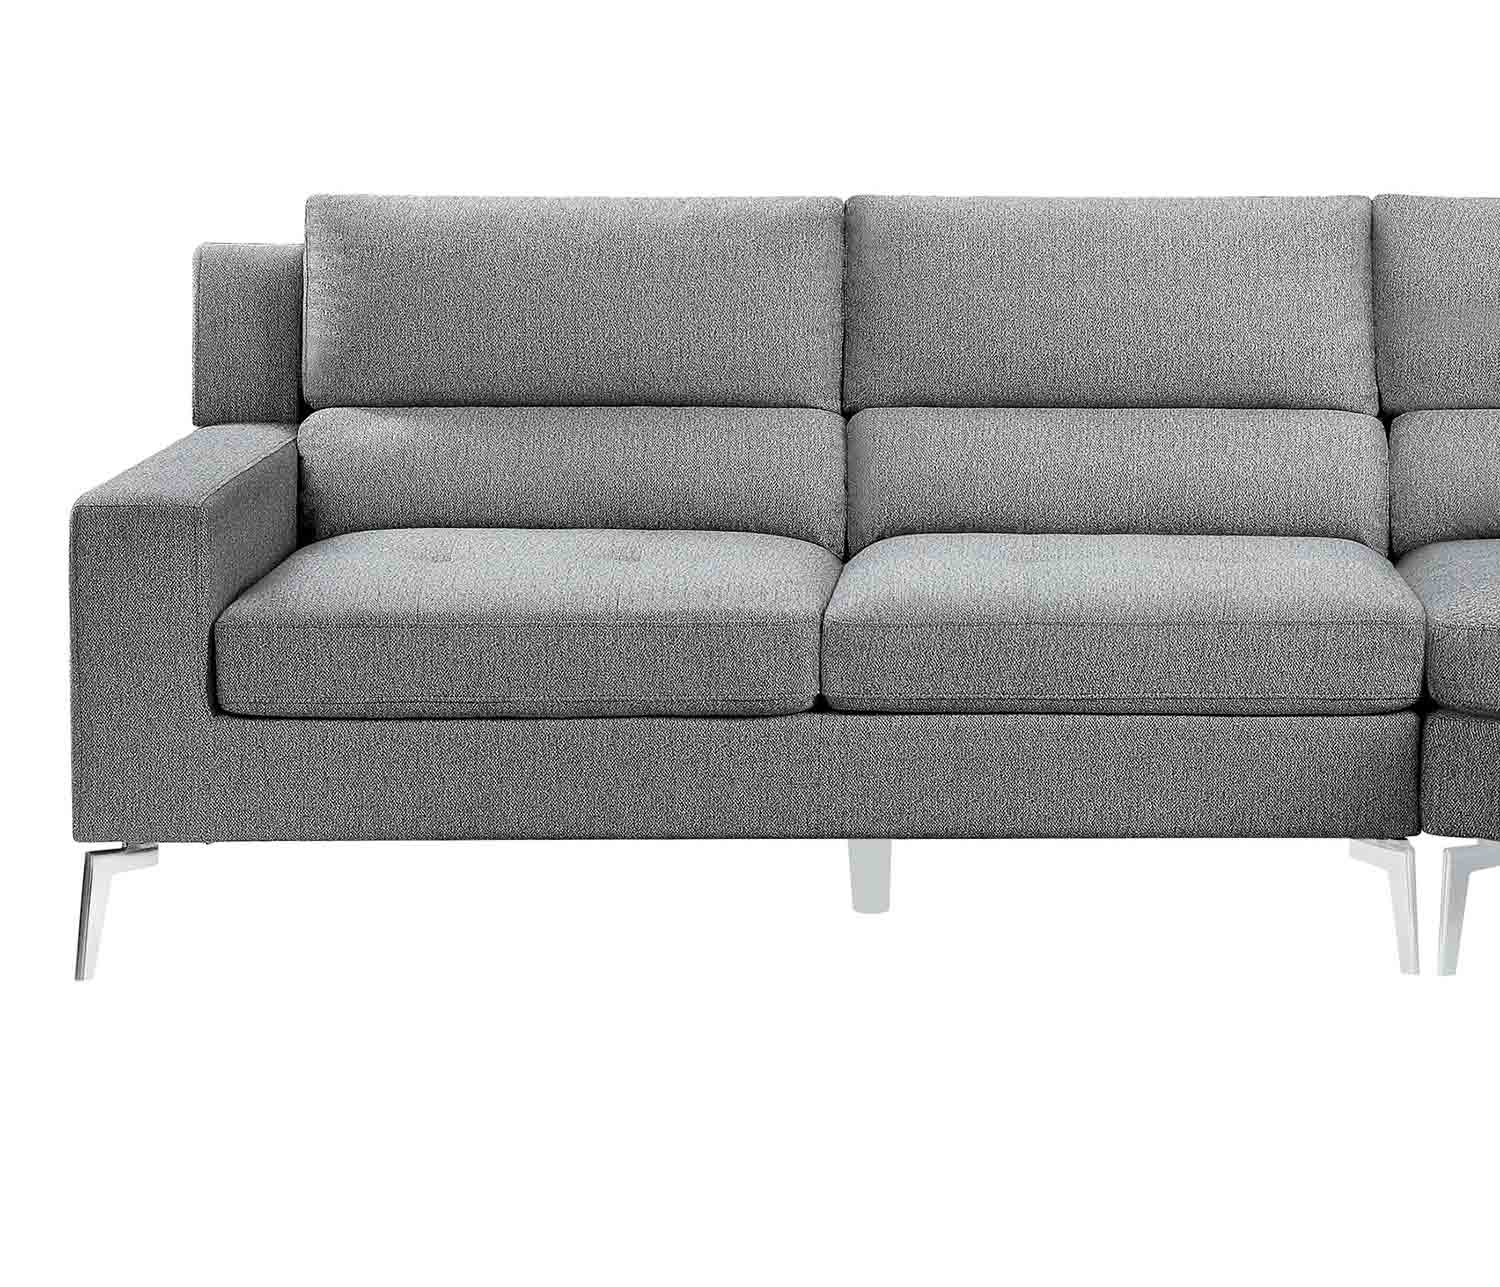 Homelegance Bonita Left Side 2-Seater - Gray